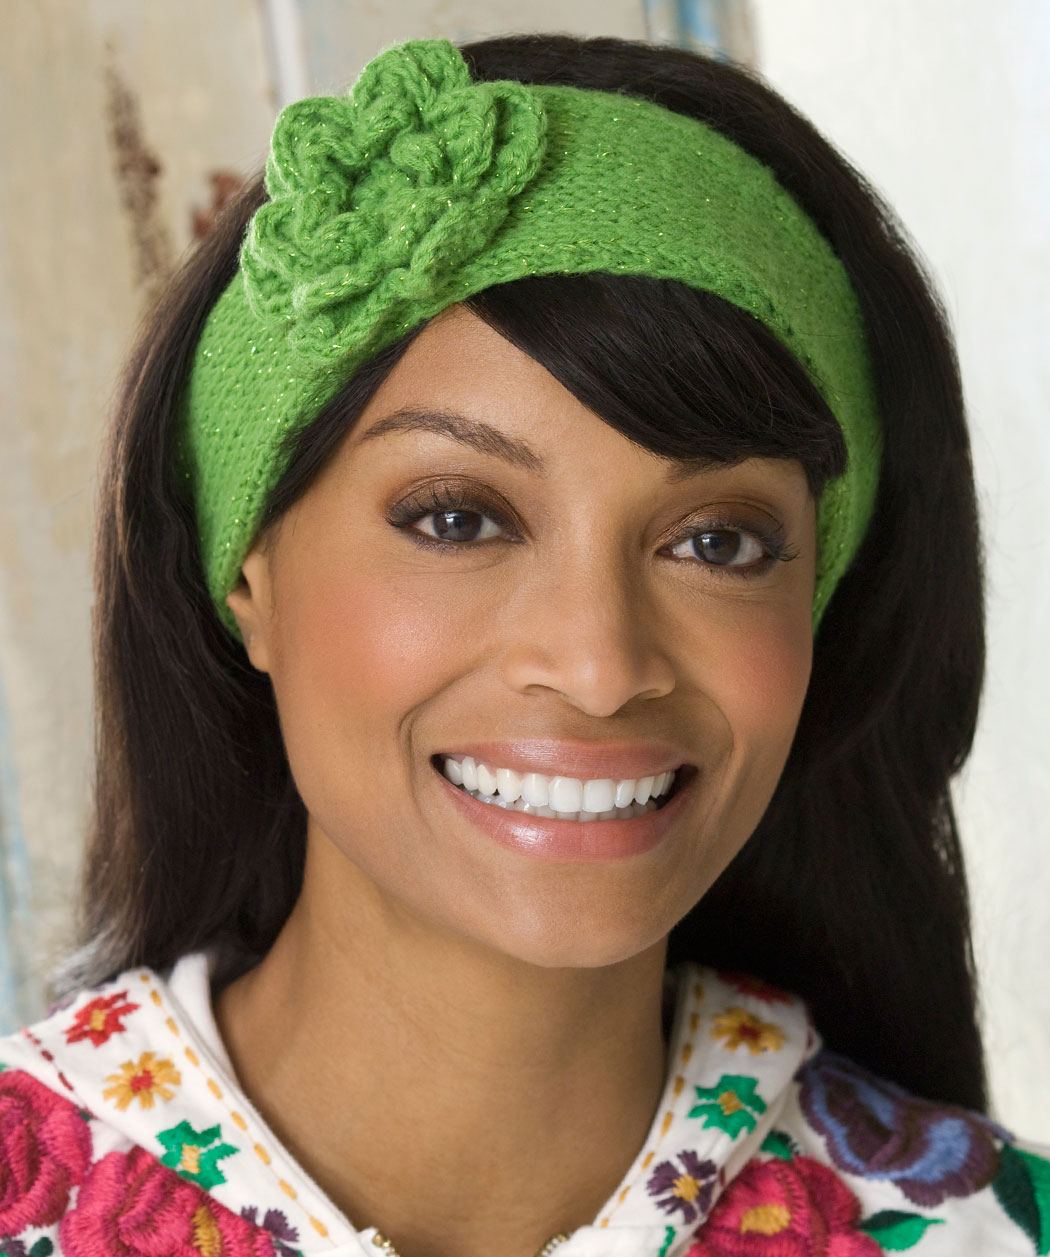 Knit Headband with Flower Patterns